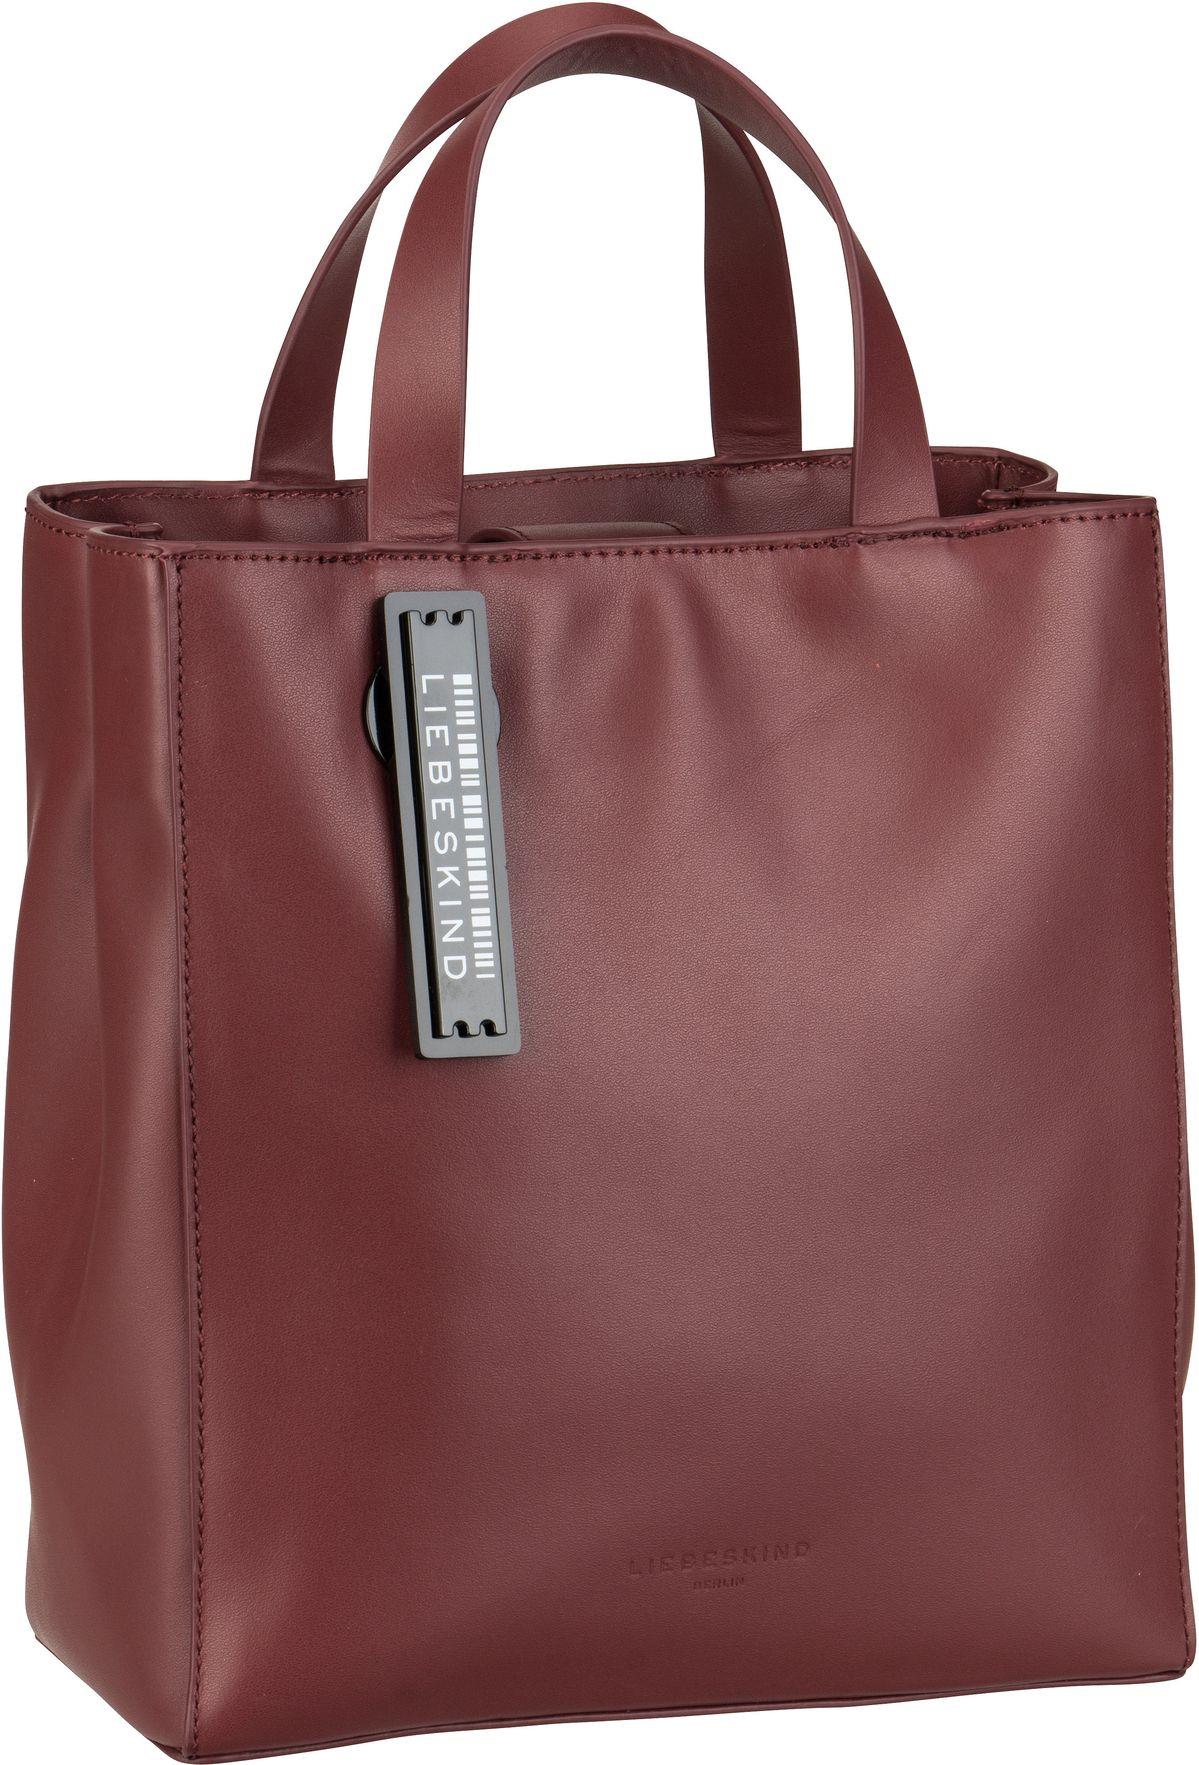 Berlin Handtasche Paper Bag Tote S Red Wine